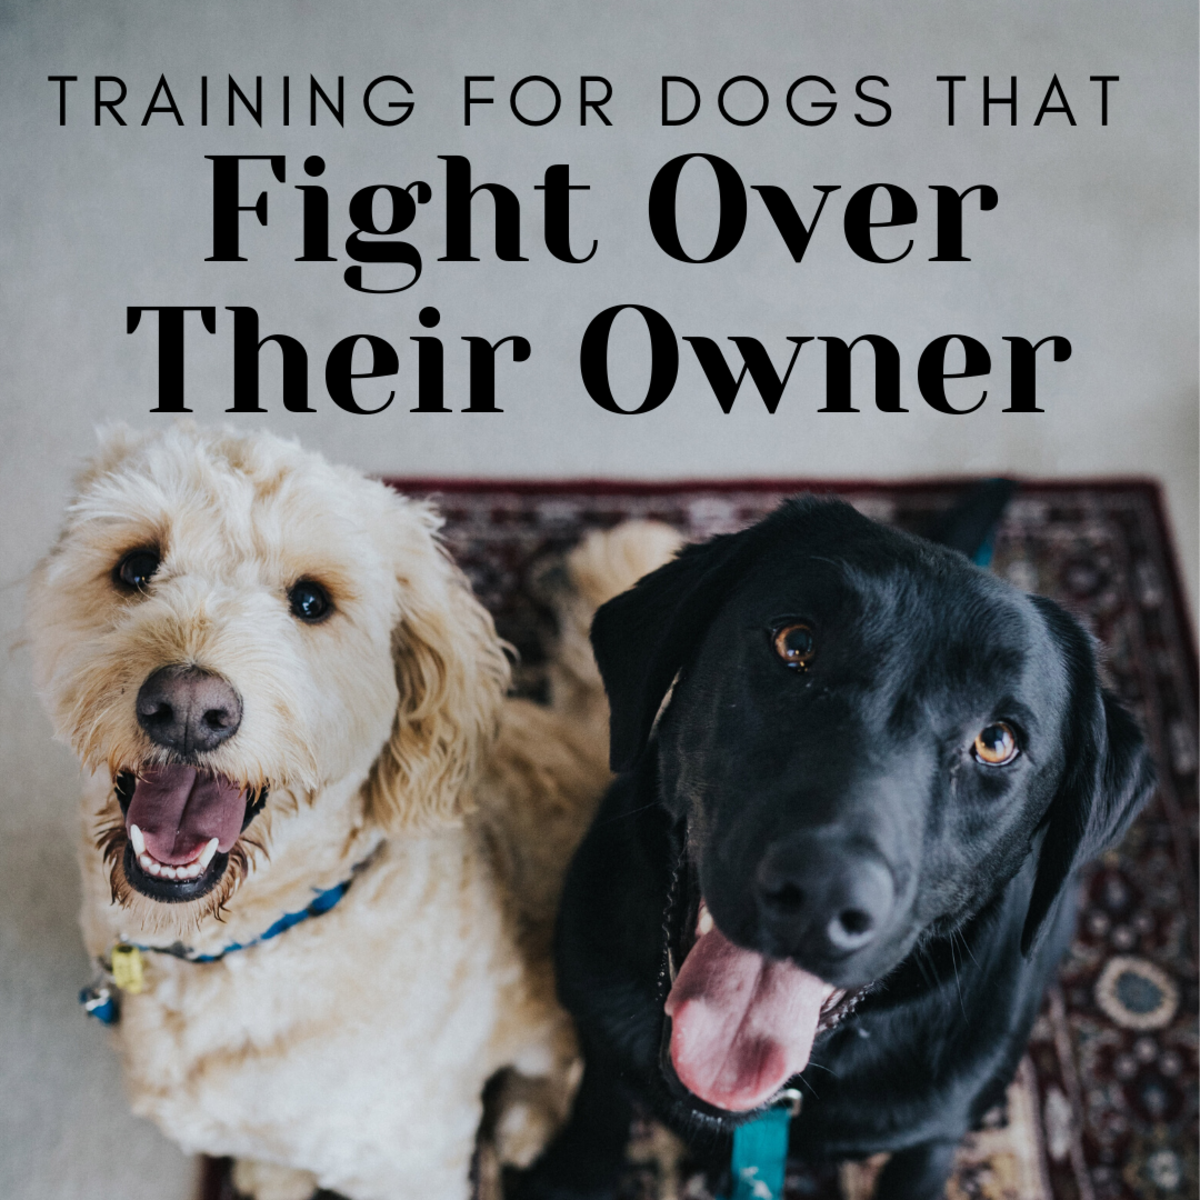 Stop Dogs From Fighting Over an Owner for Attention